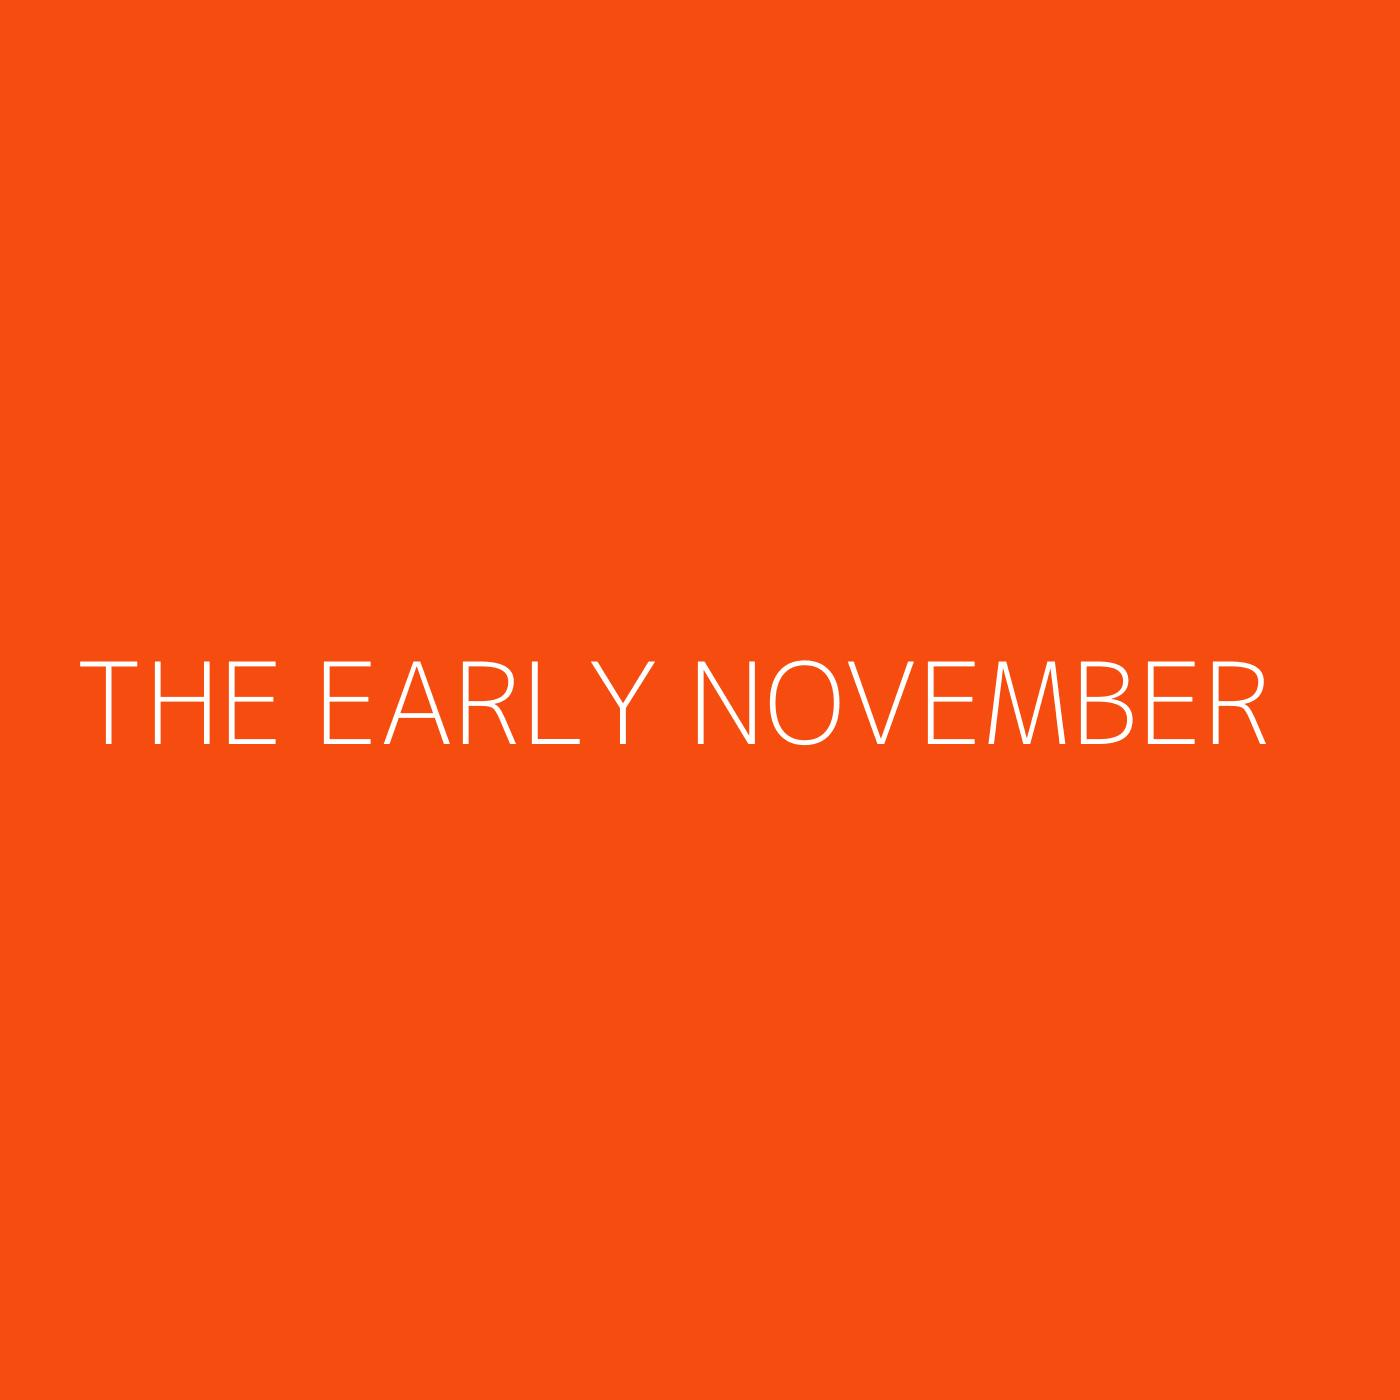 The Early November Playlist Artwork